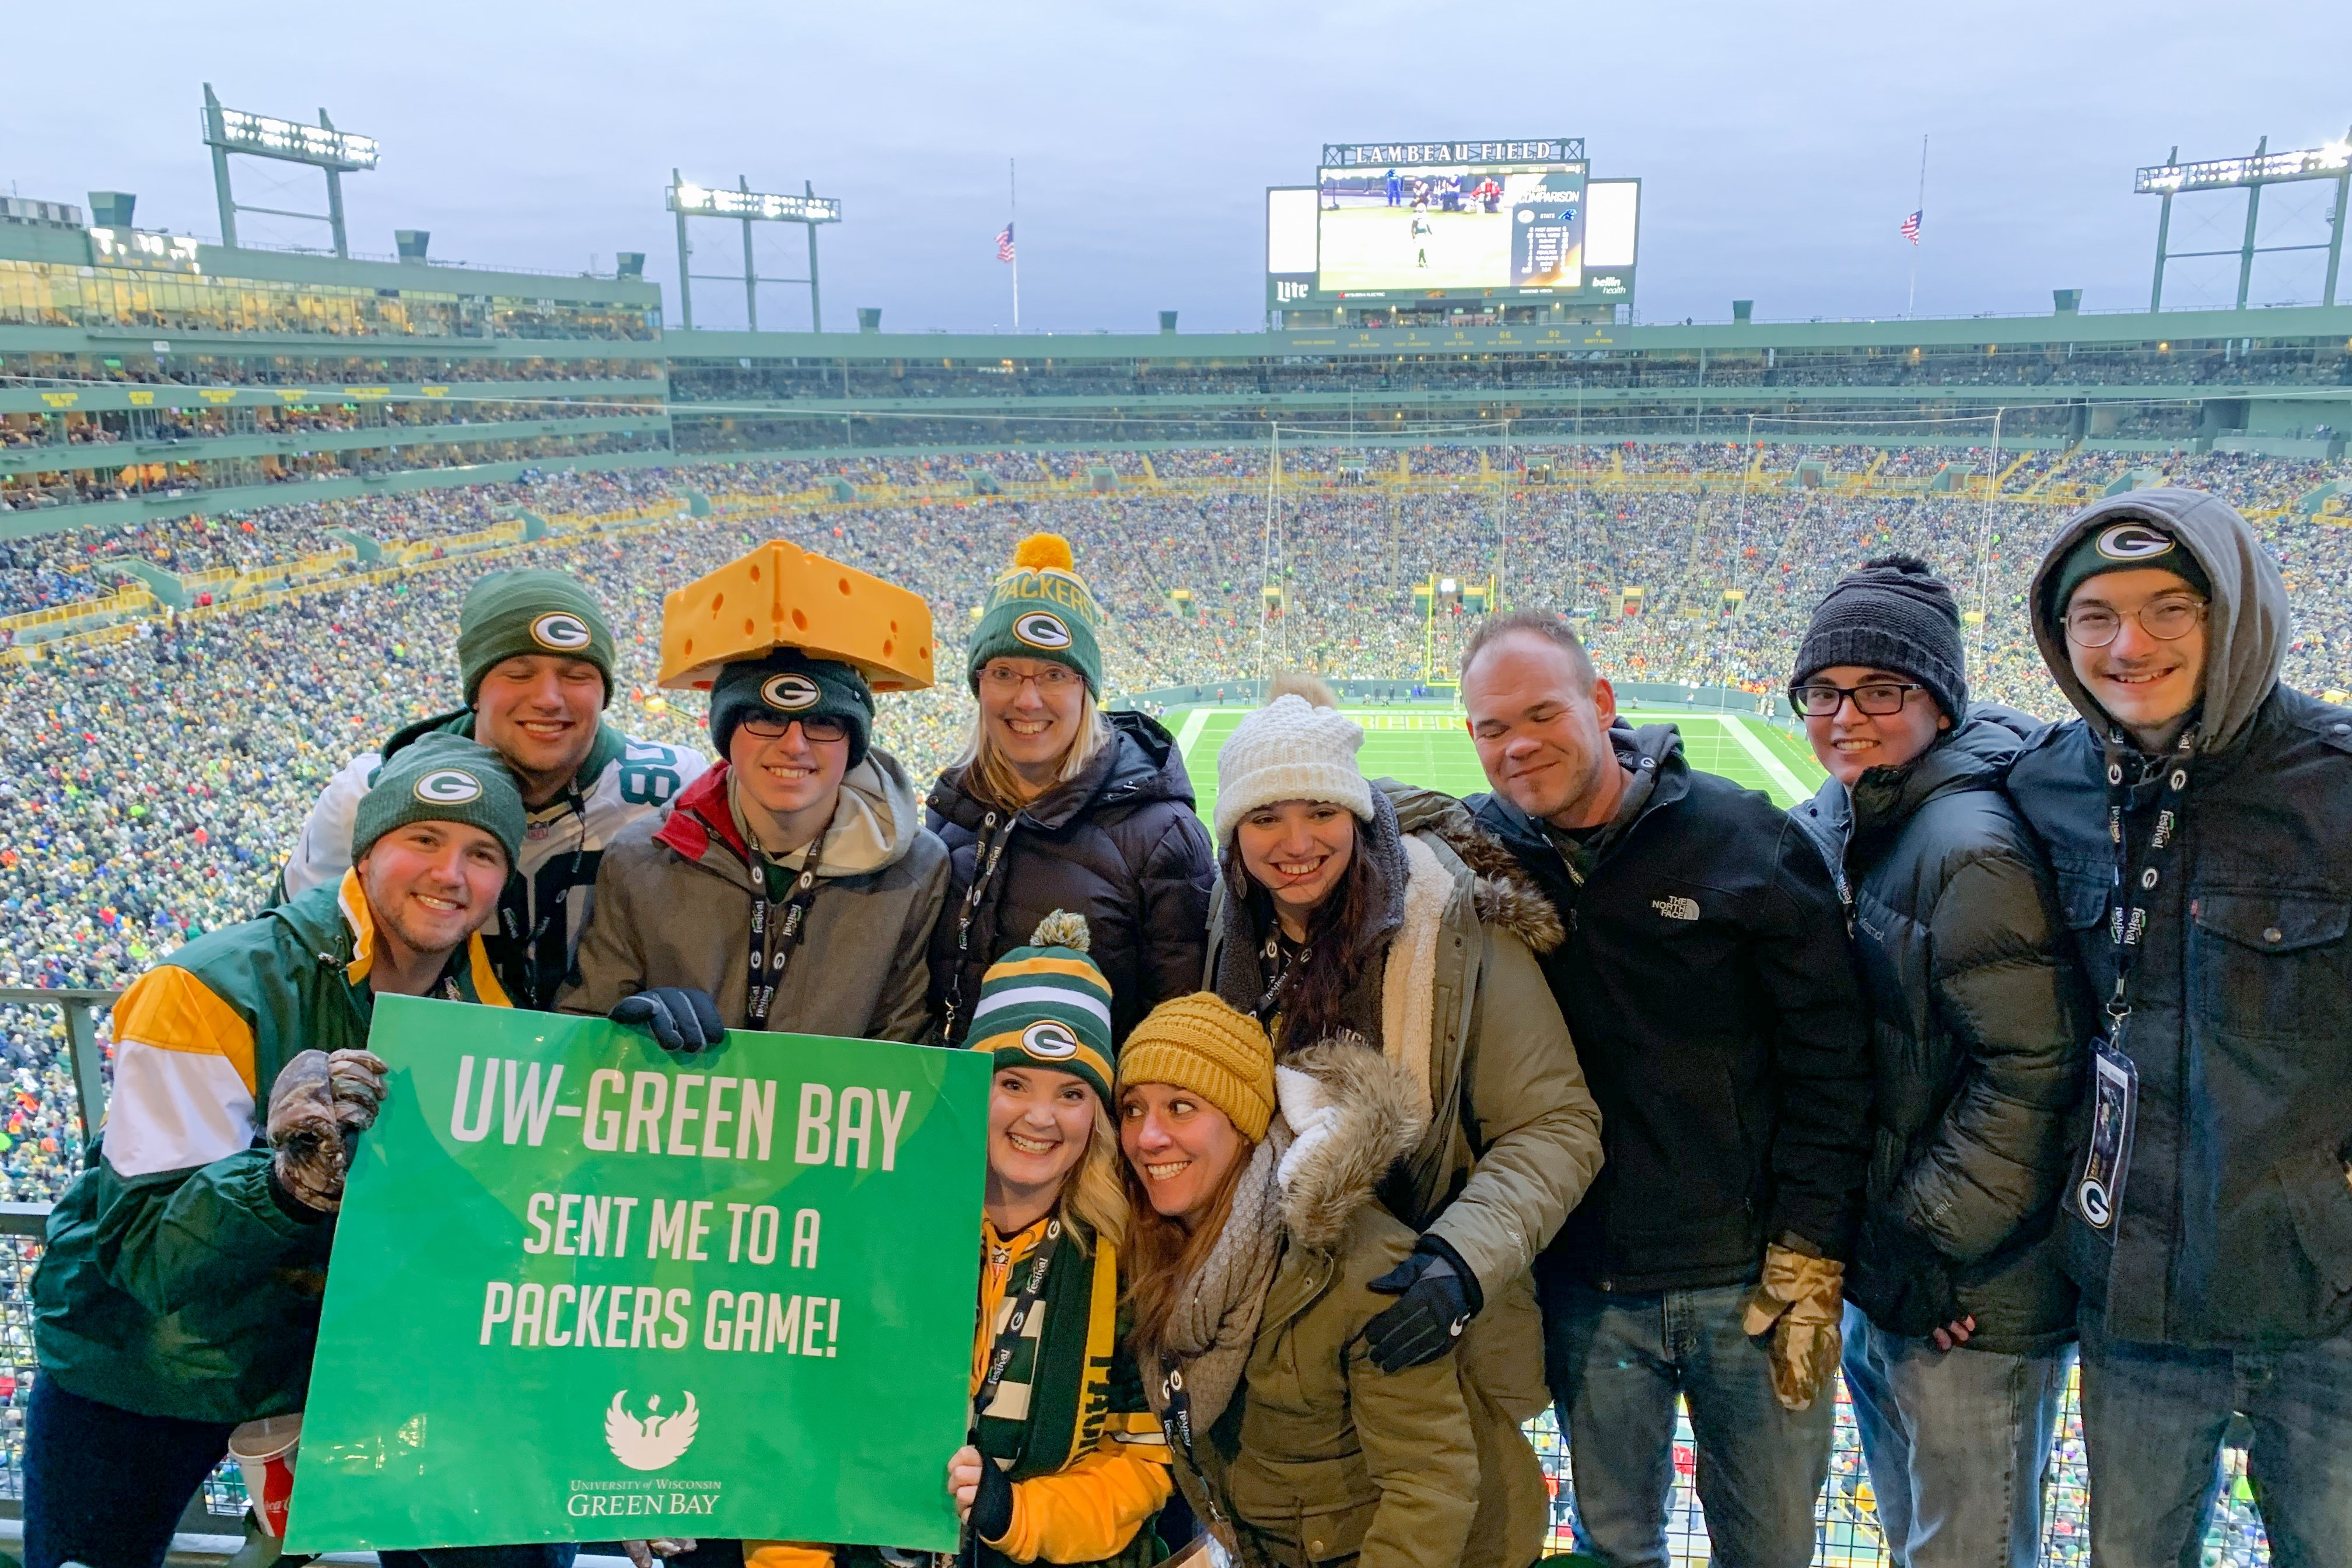 Photo of UWGB folks at Packers game